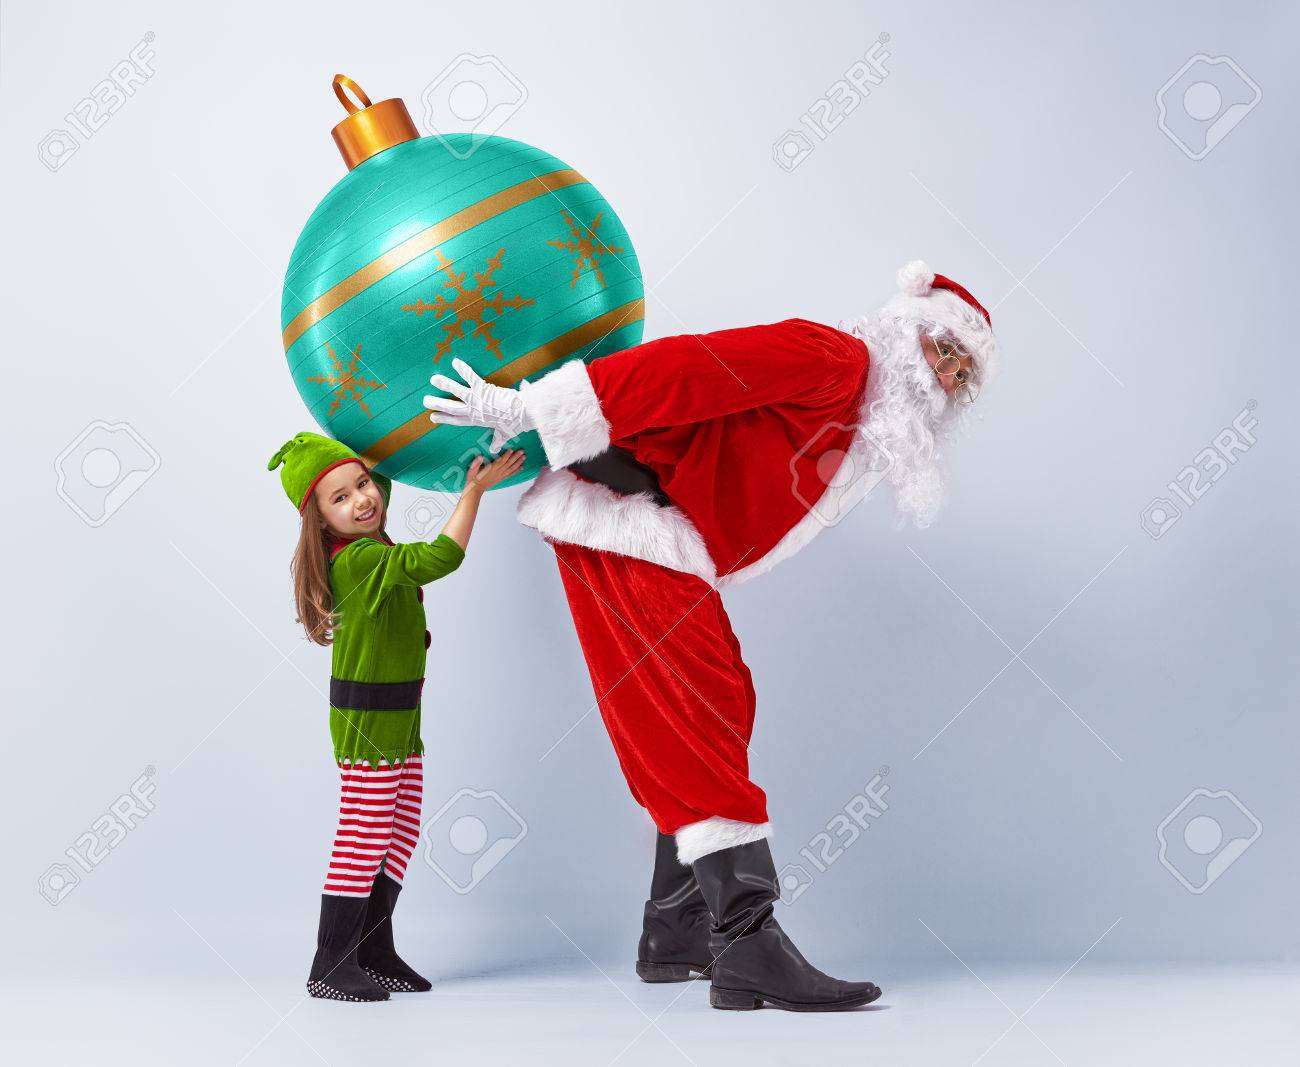 Funny Santa And Elf Holding Together A Huge Christmas Bauble Stock Photo 46636542